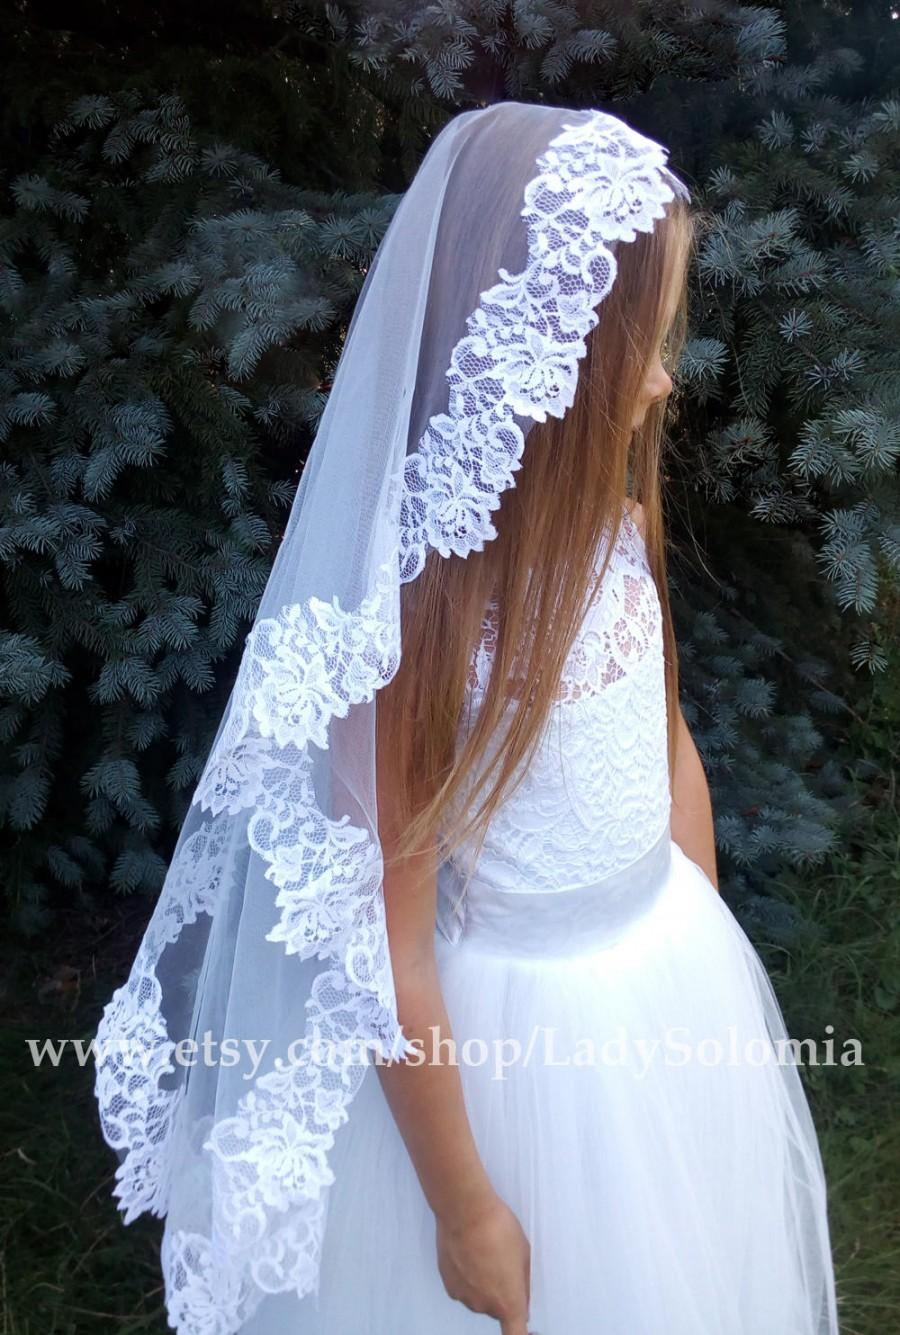 Hochzeit - First communion veils, Mantilla Communion Veil, Lace Communion Veil, Holy Communion, Flower girl veils, Lace Mantilla Communion, White veils